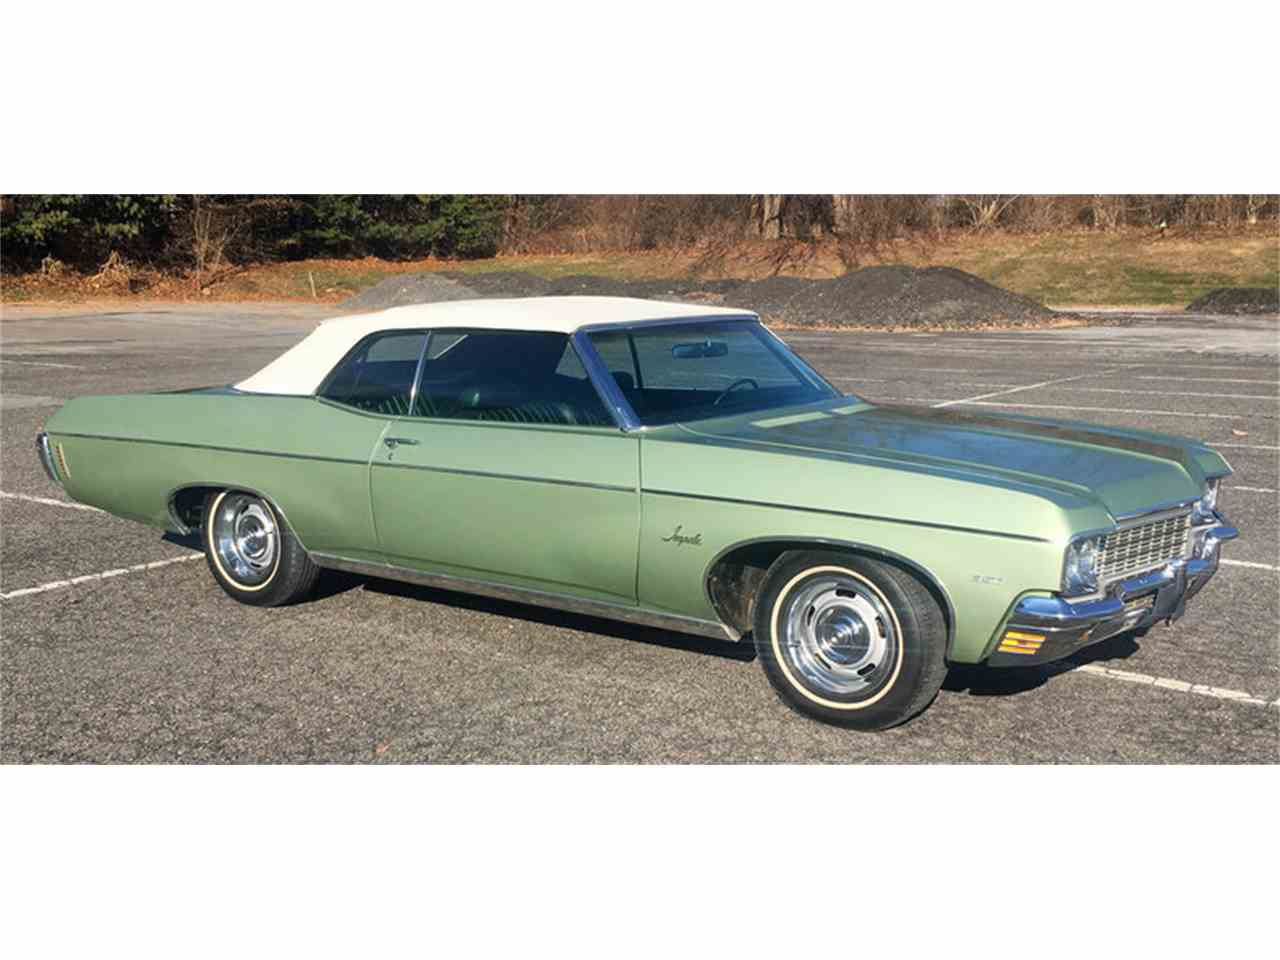 Classic Cars For Sale In Tampa Bay Area